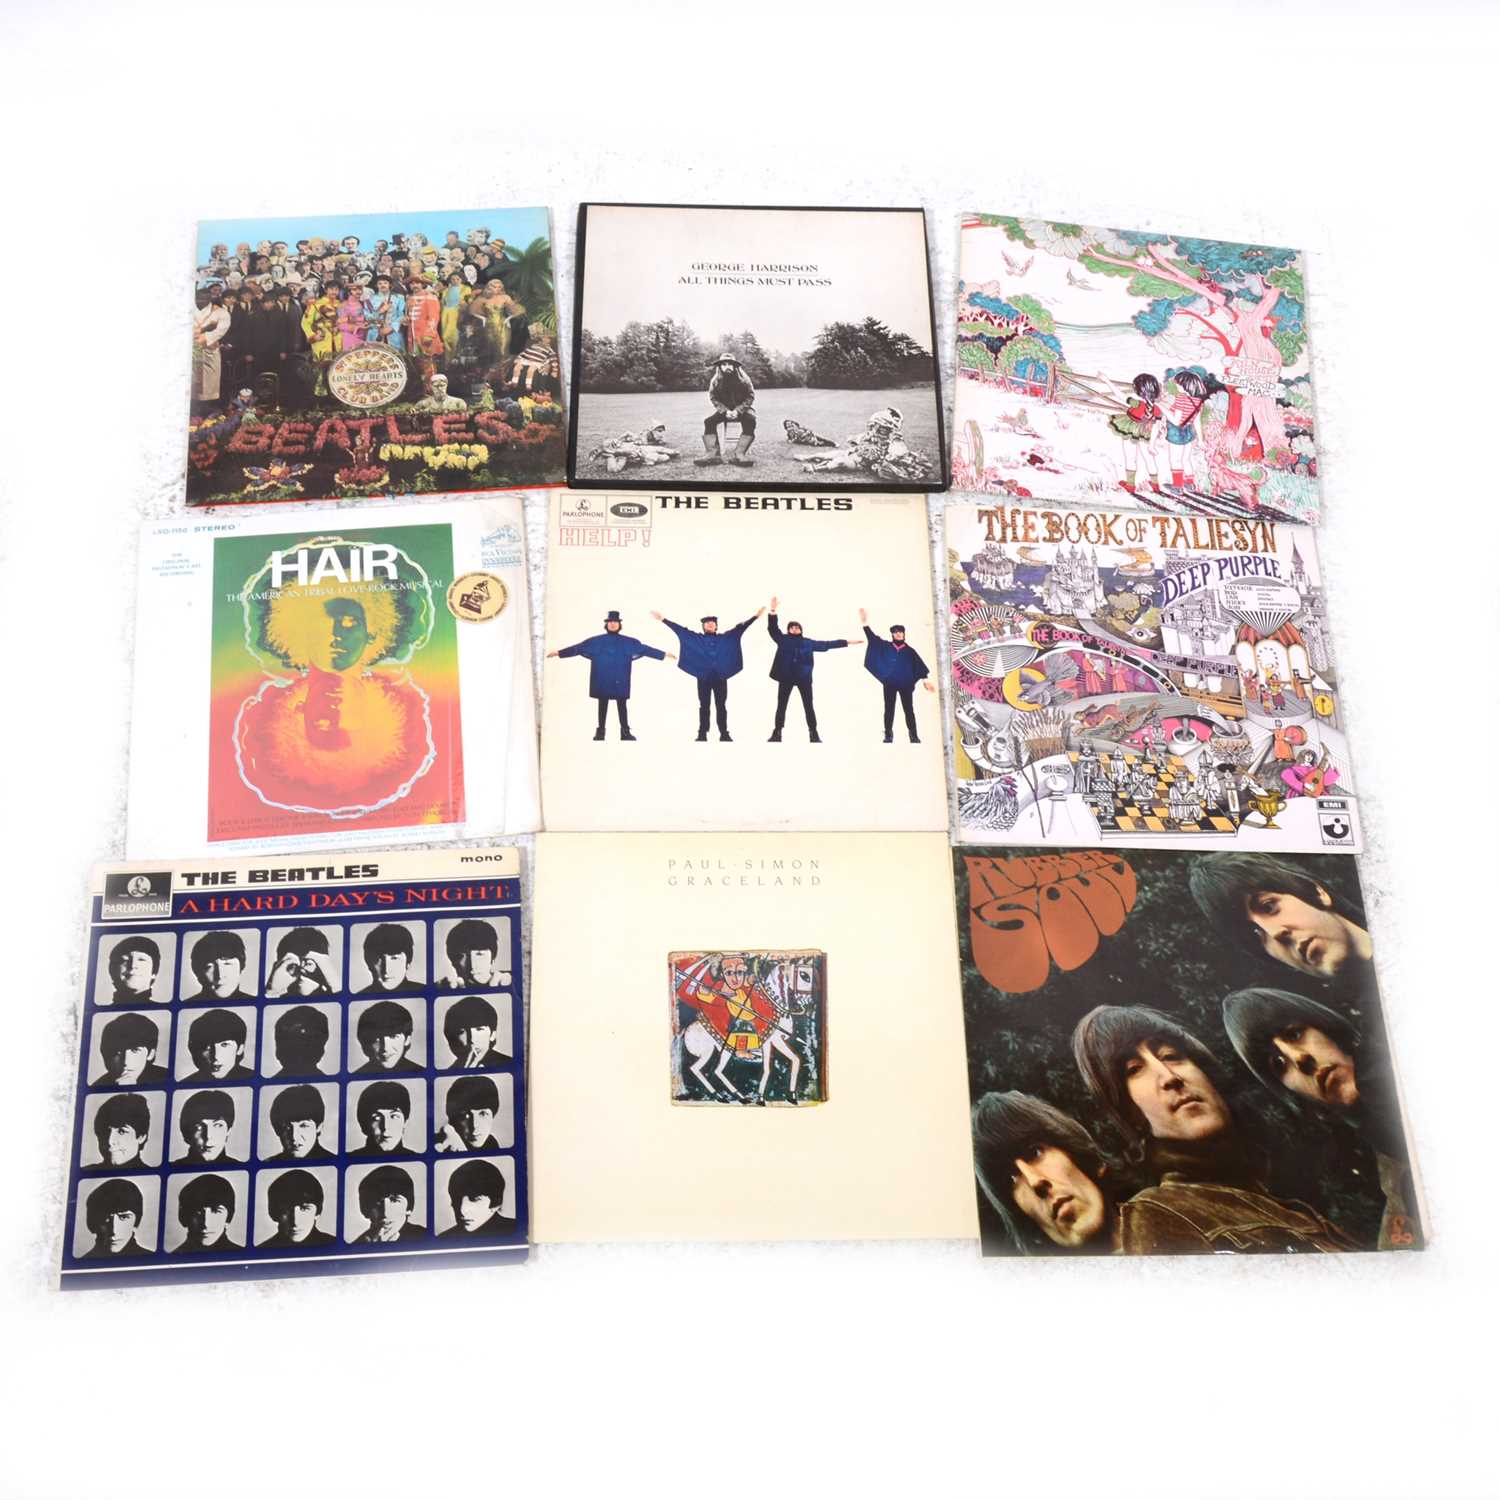 """Lot 31-Vinyl LP and 7"""" single records; including nineteen LPs, Fleetwood Mac Kiln House and The Beatles"""